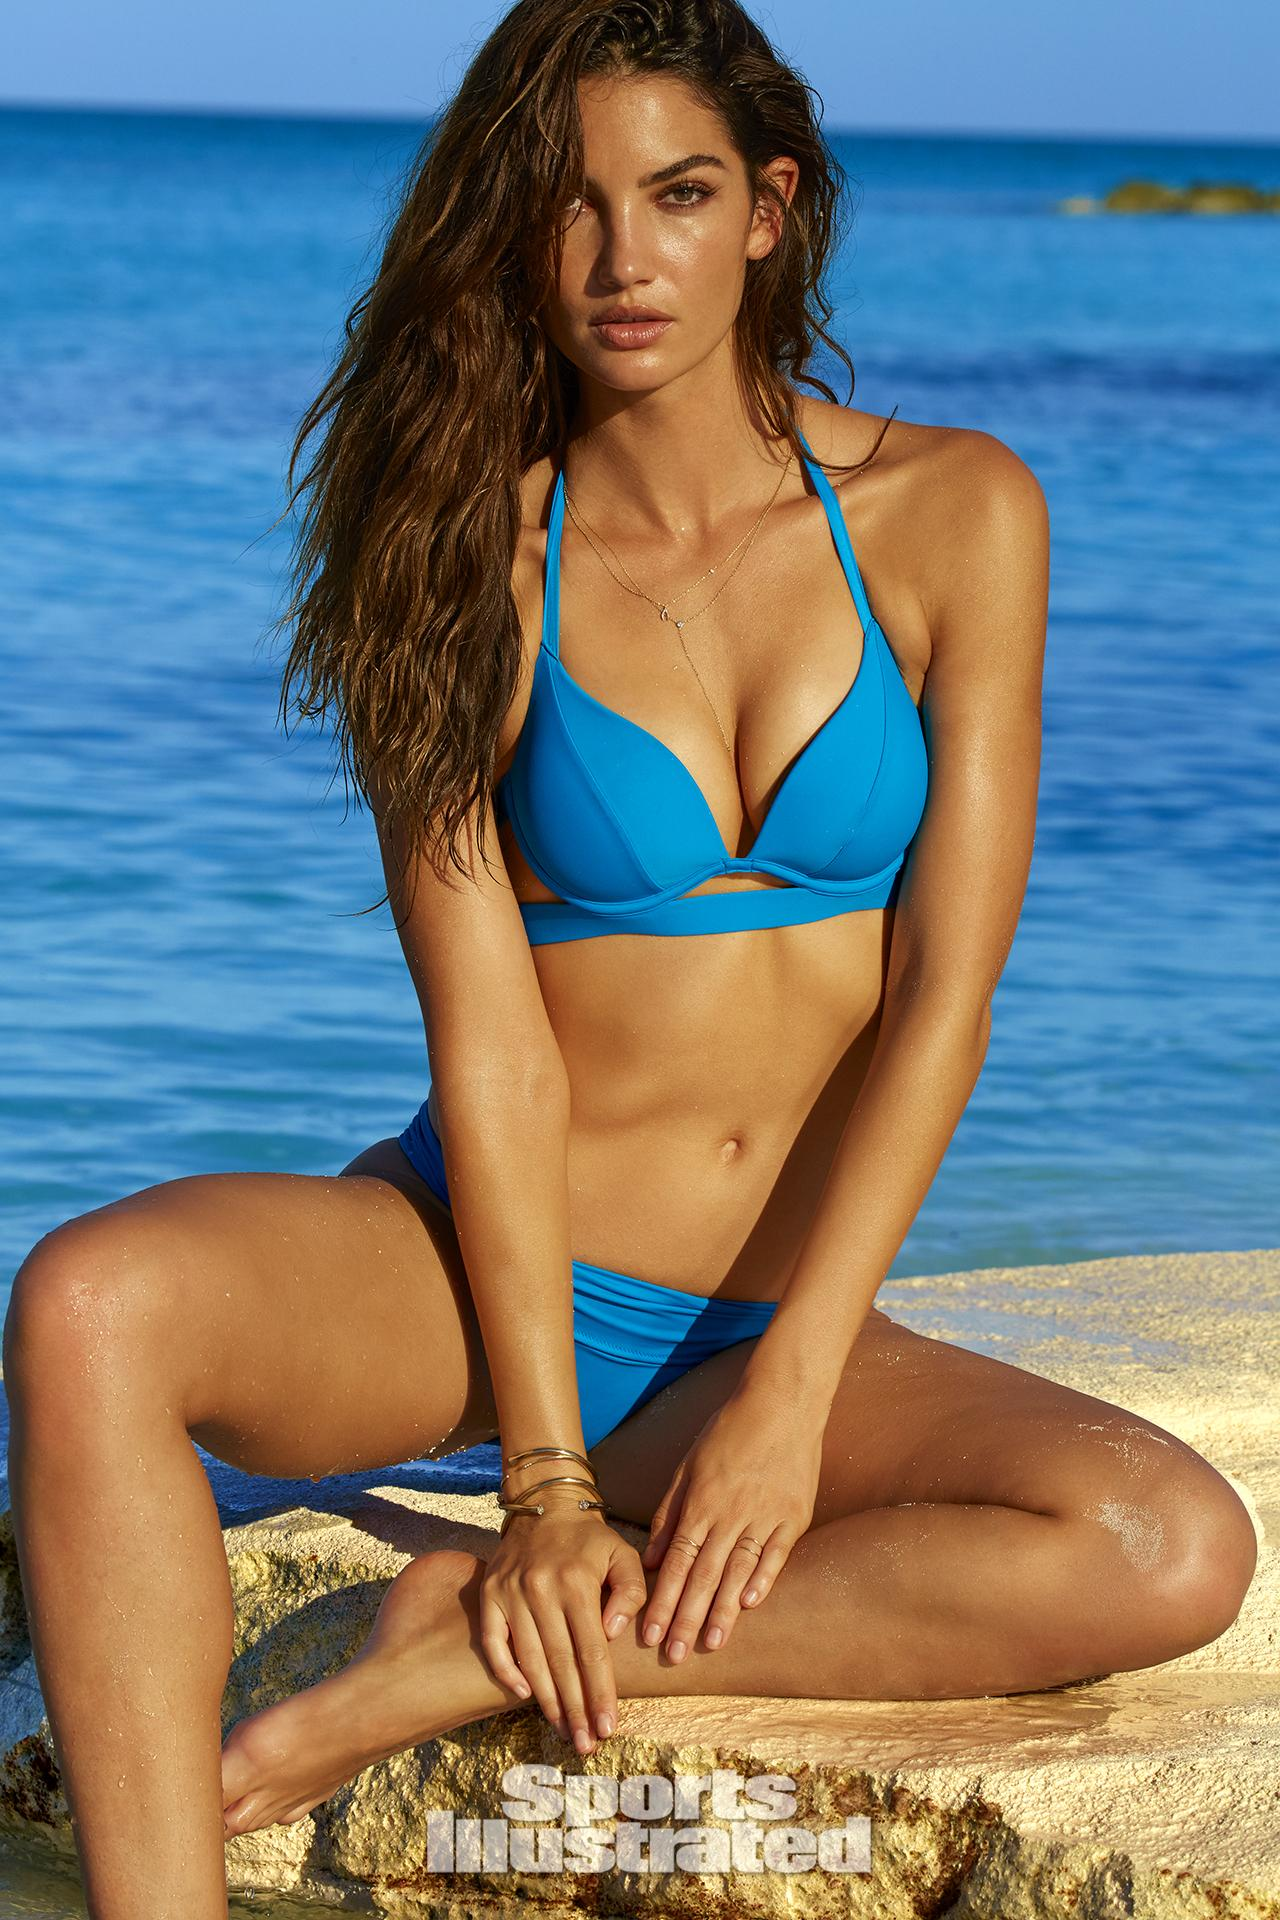 Online shopping for popular & hot Sports Bra Swimsuit from Sports & Entertainment, Two-Piece Separates, One-Piece Suits, Two-Piece Suits and more related Sports Bra Swimsuit like sports bra swimsuits, swimsuits sports bra, sports bra swimwear, sports swimwear bra. Discover over of the best Selection Sports Bra Swimsuit .